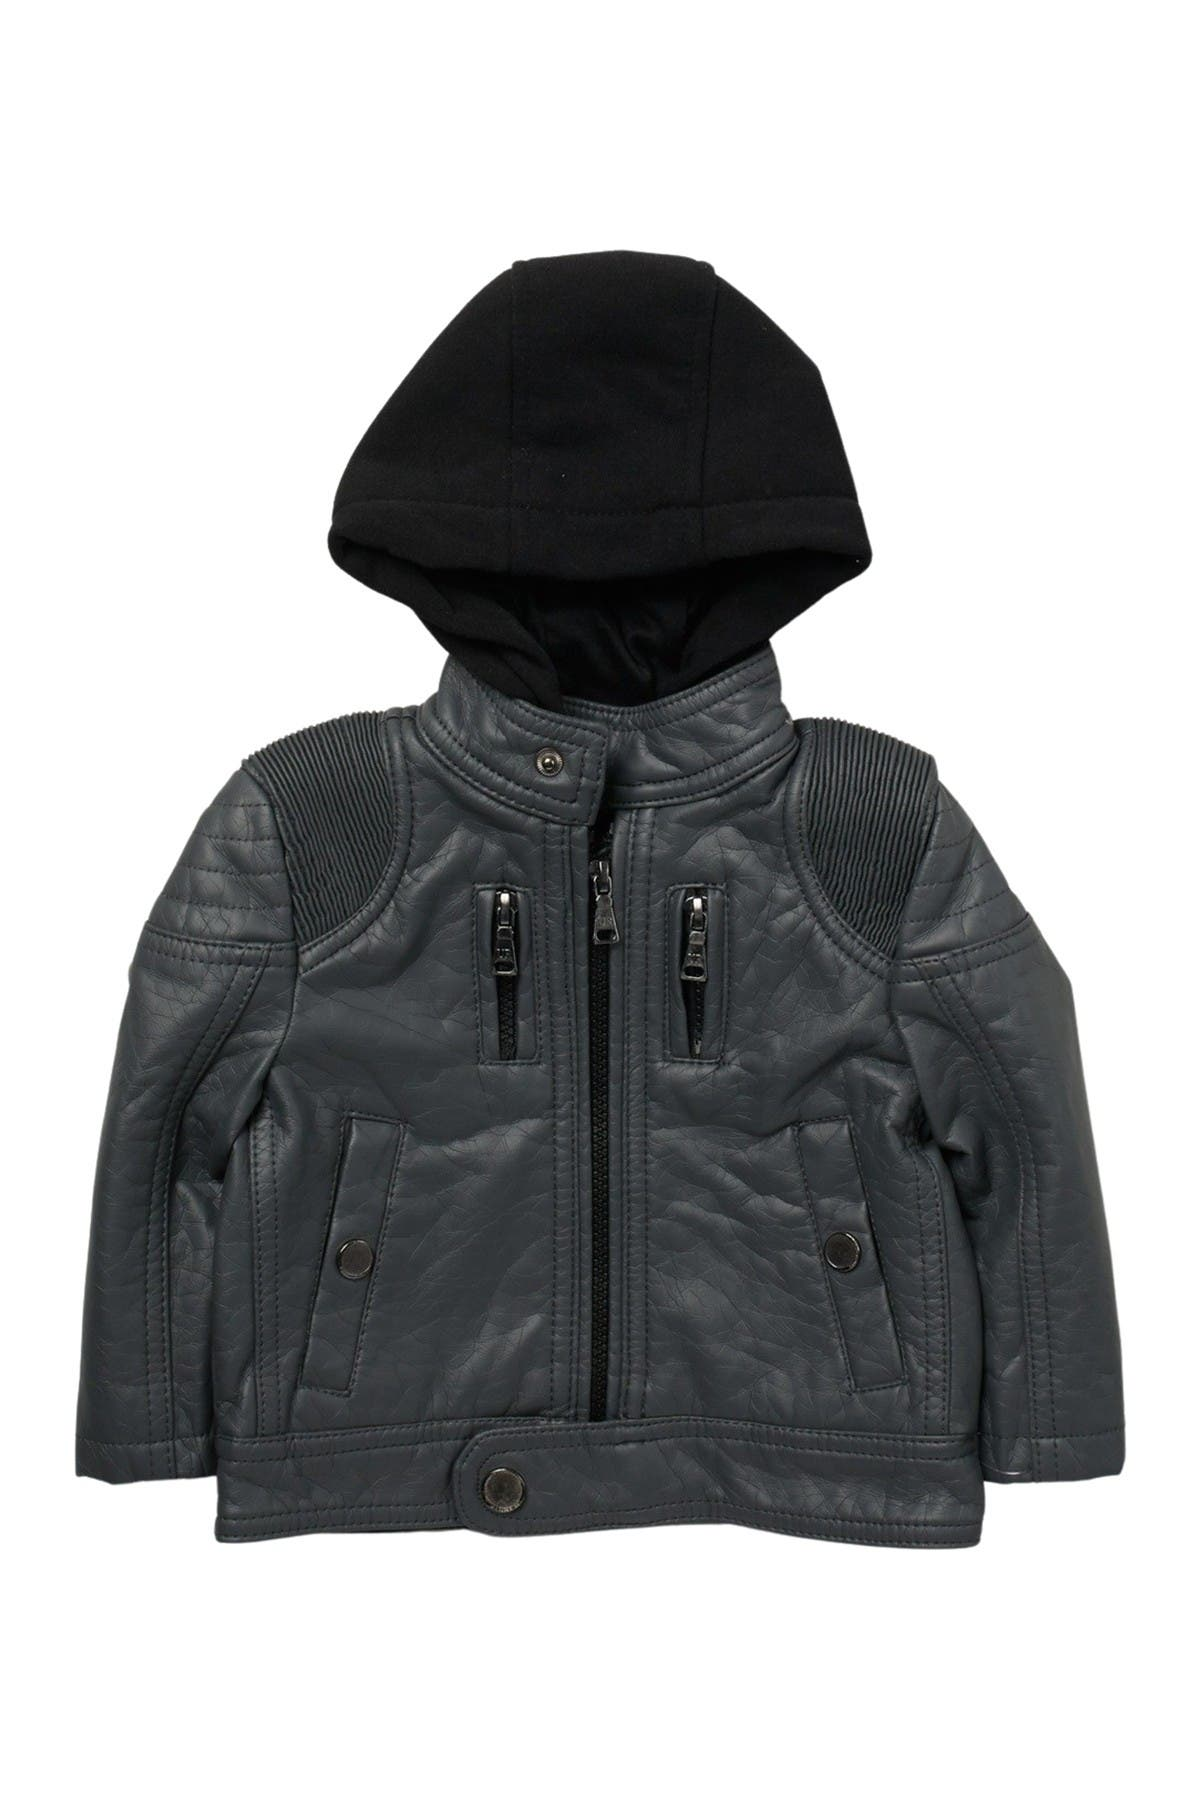 Image of Urban Republic Hooded Faux Leather Jacket